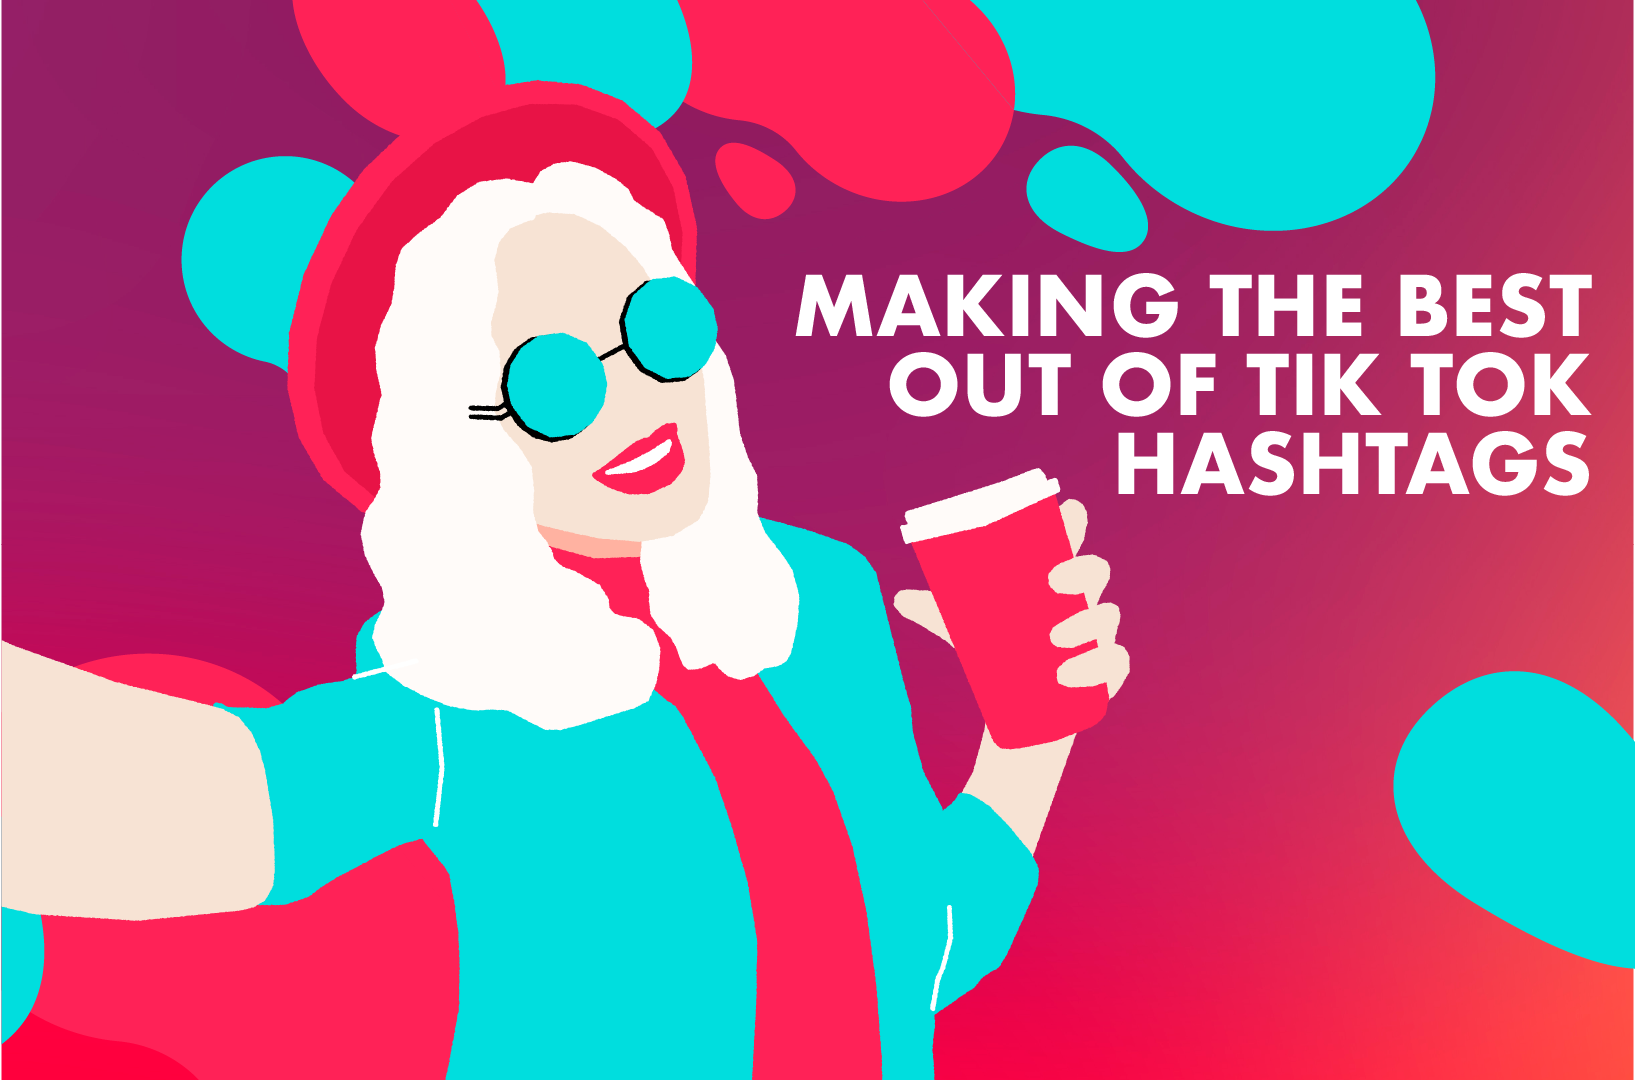 MAKING THE BEST OUT OF TIKTOK HASHTAGS - News